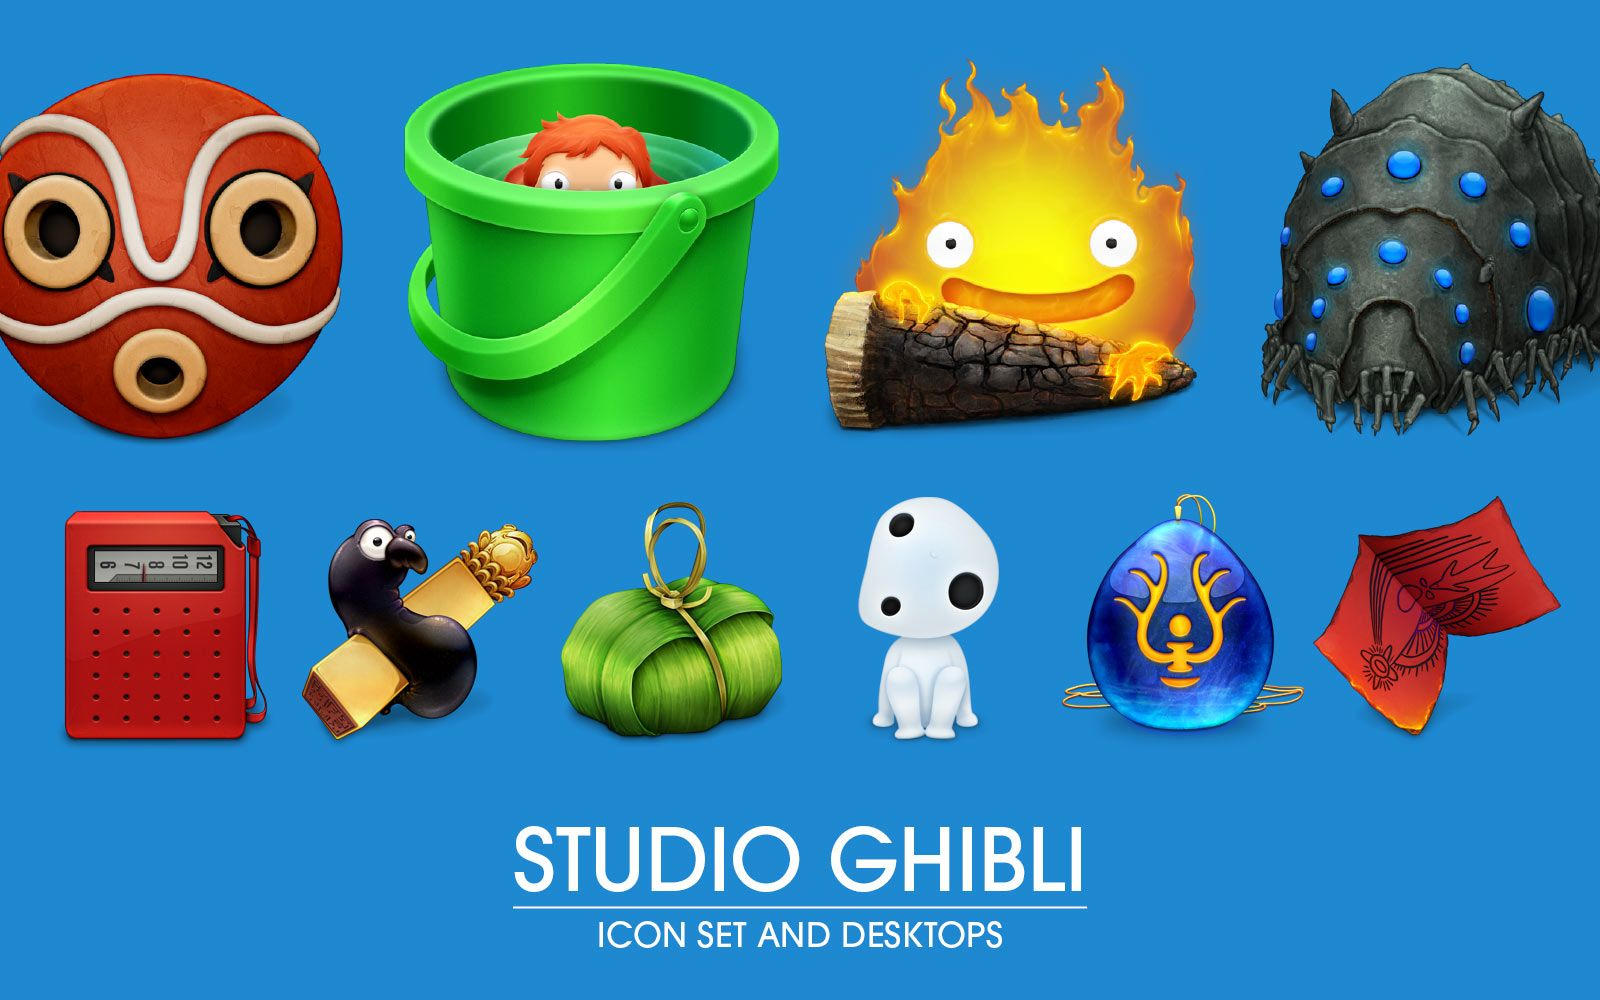 Free to download ghibli desktop icons and wallpapers